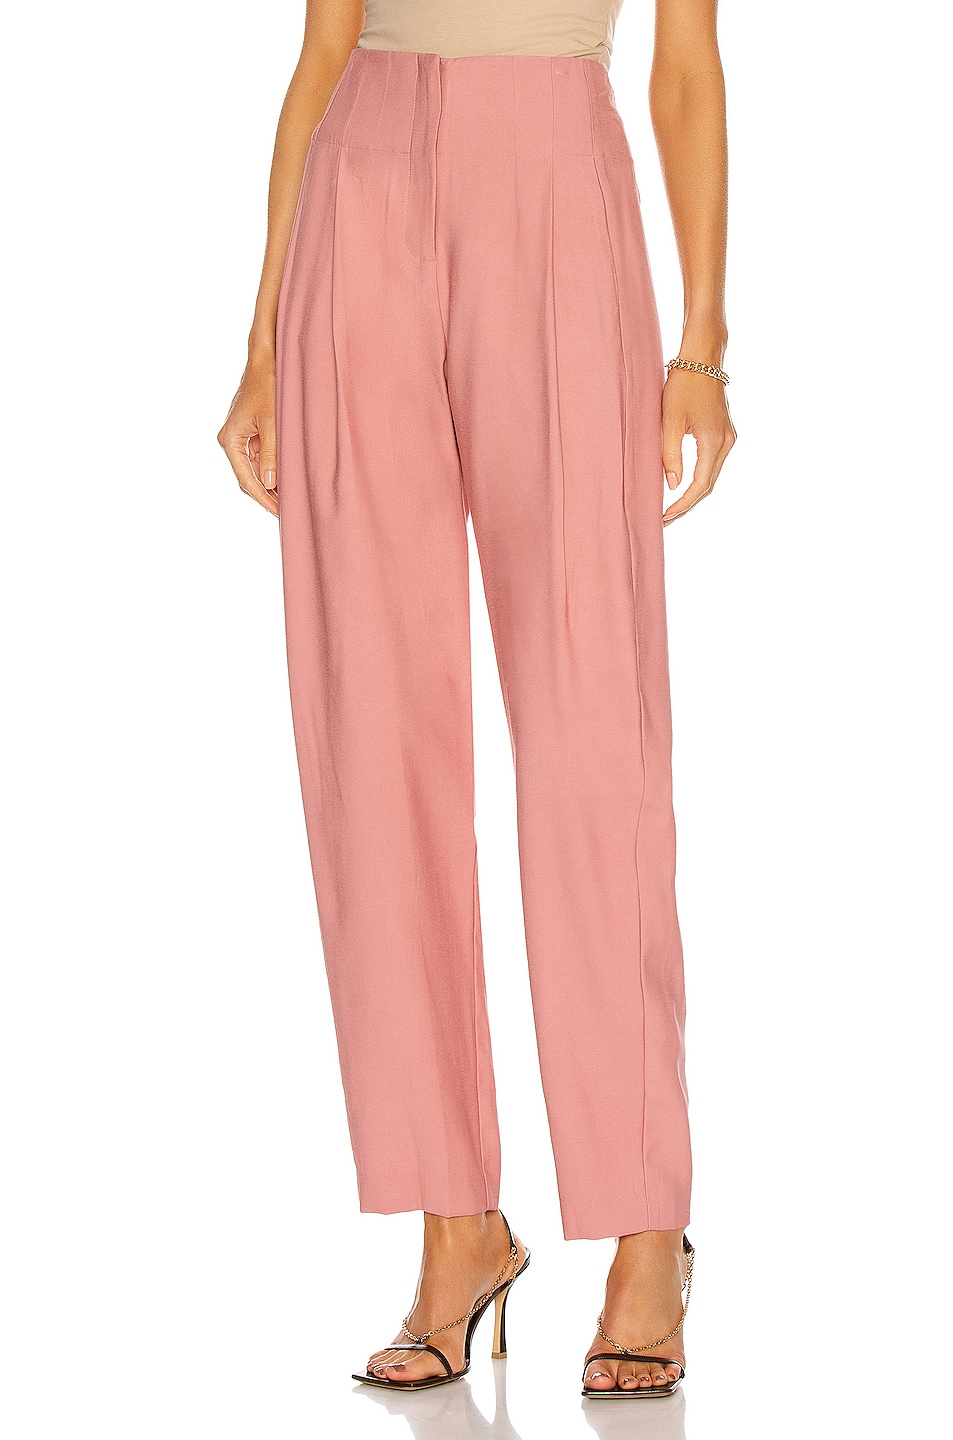 Image 1 of The Sei Pleated Trouser in Rose